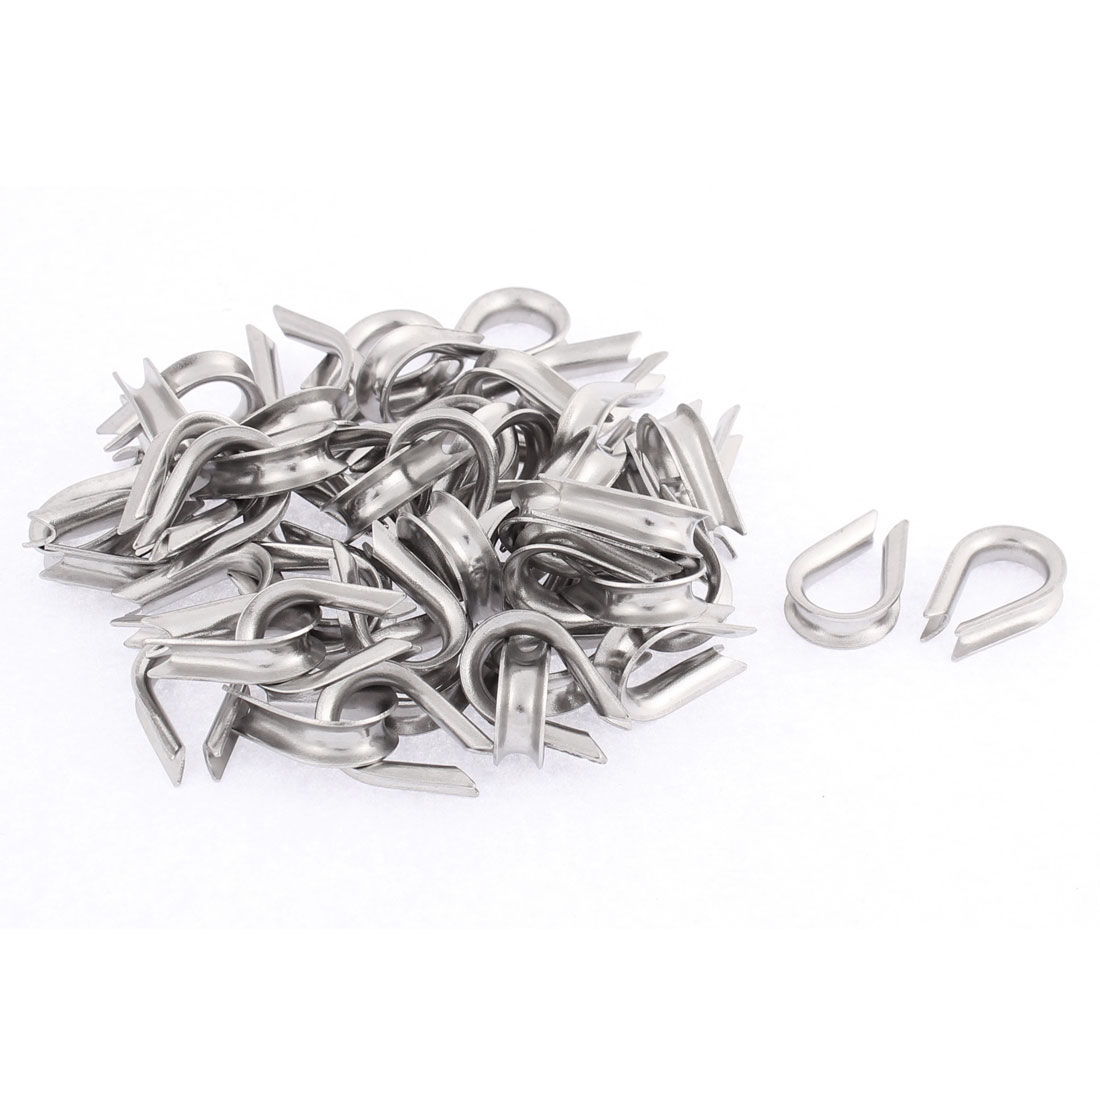 Stainless Steel 3mm Standard Wire Rope Cable Thimbles Rigging Silver Tone 50pcs